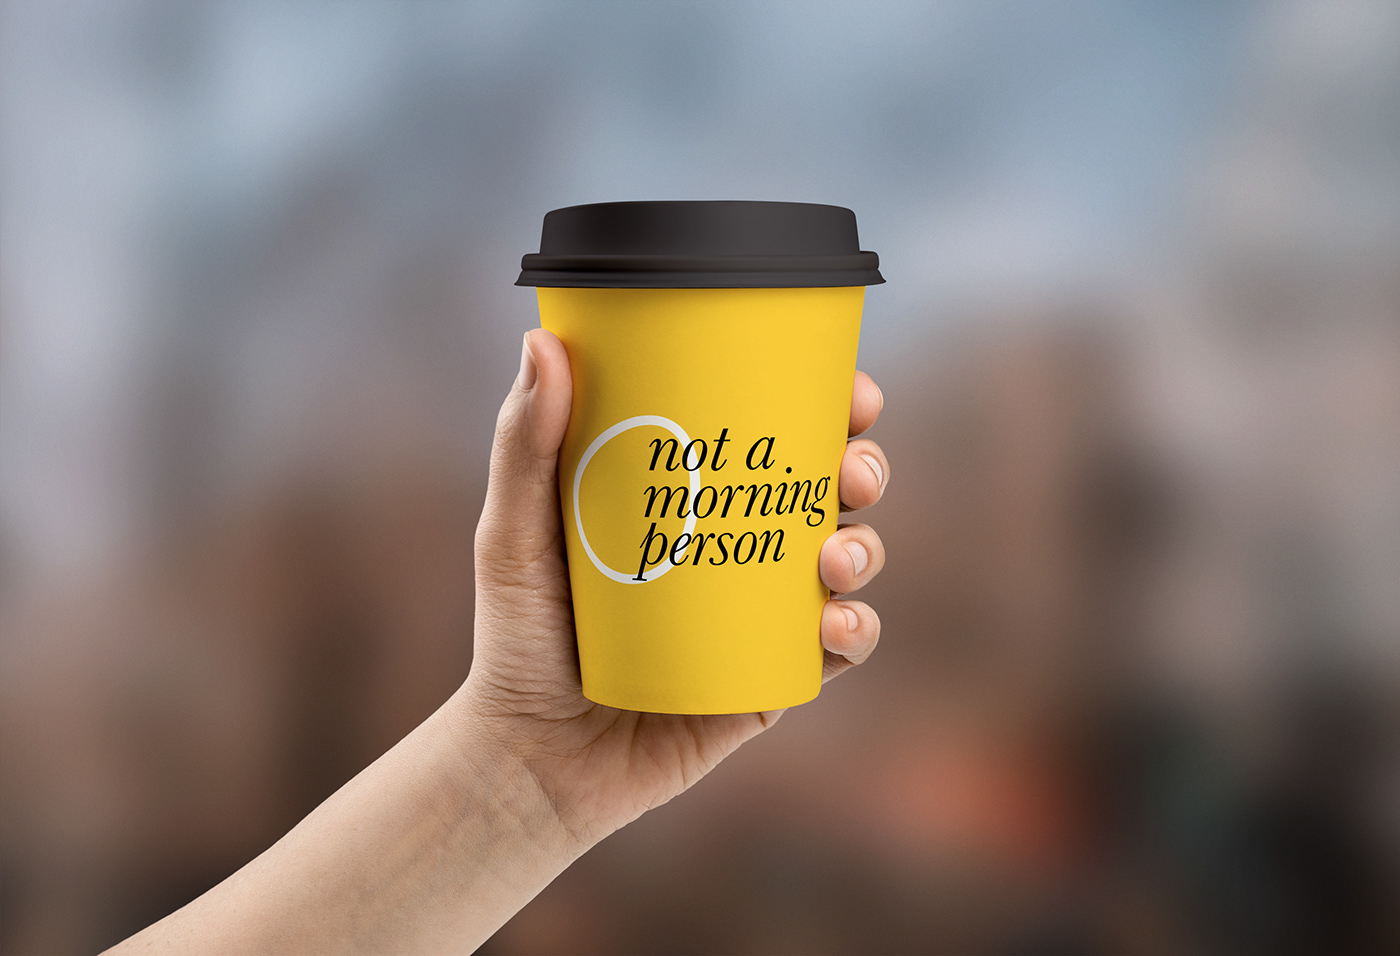 Image may contain: cup, indoor and yellow